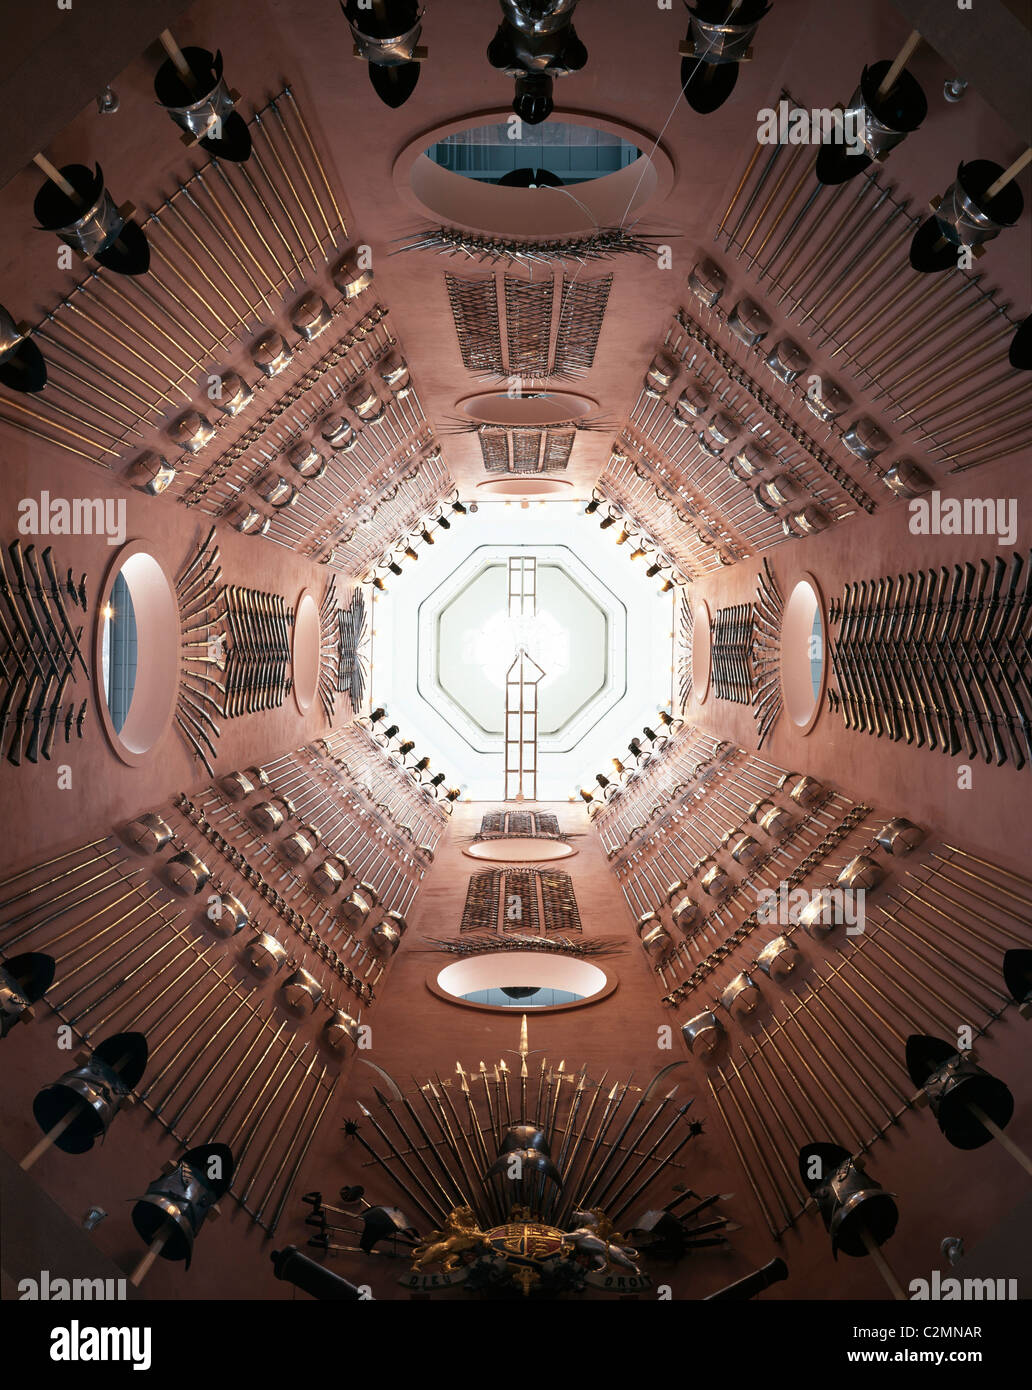 Royal Armouries - Military Museum, Leeds, Yorkshire, England. - View up the tower gallery. - Stock Image